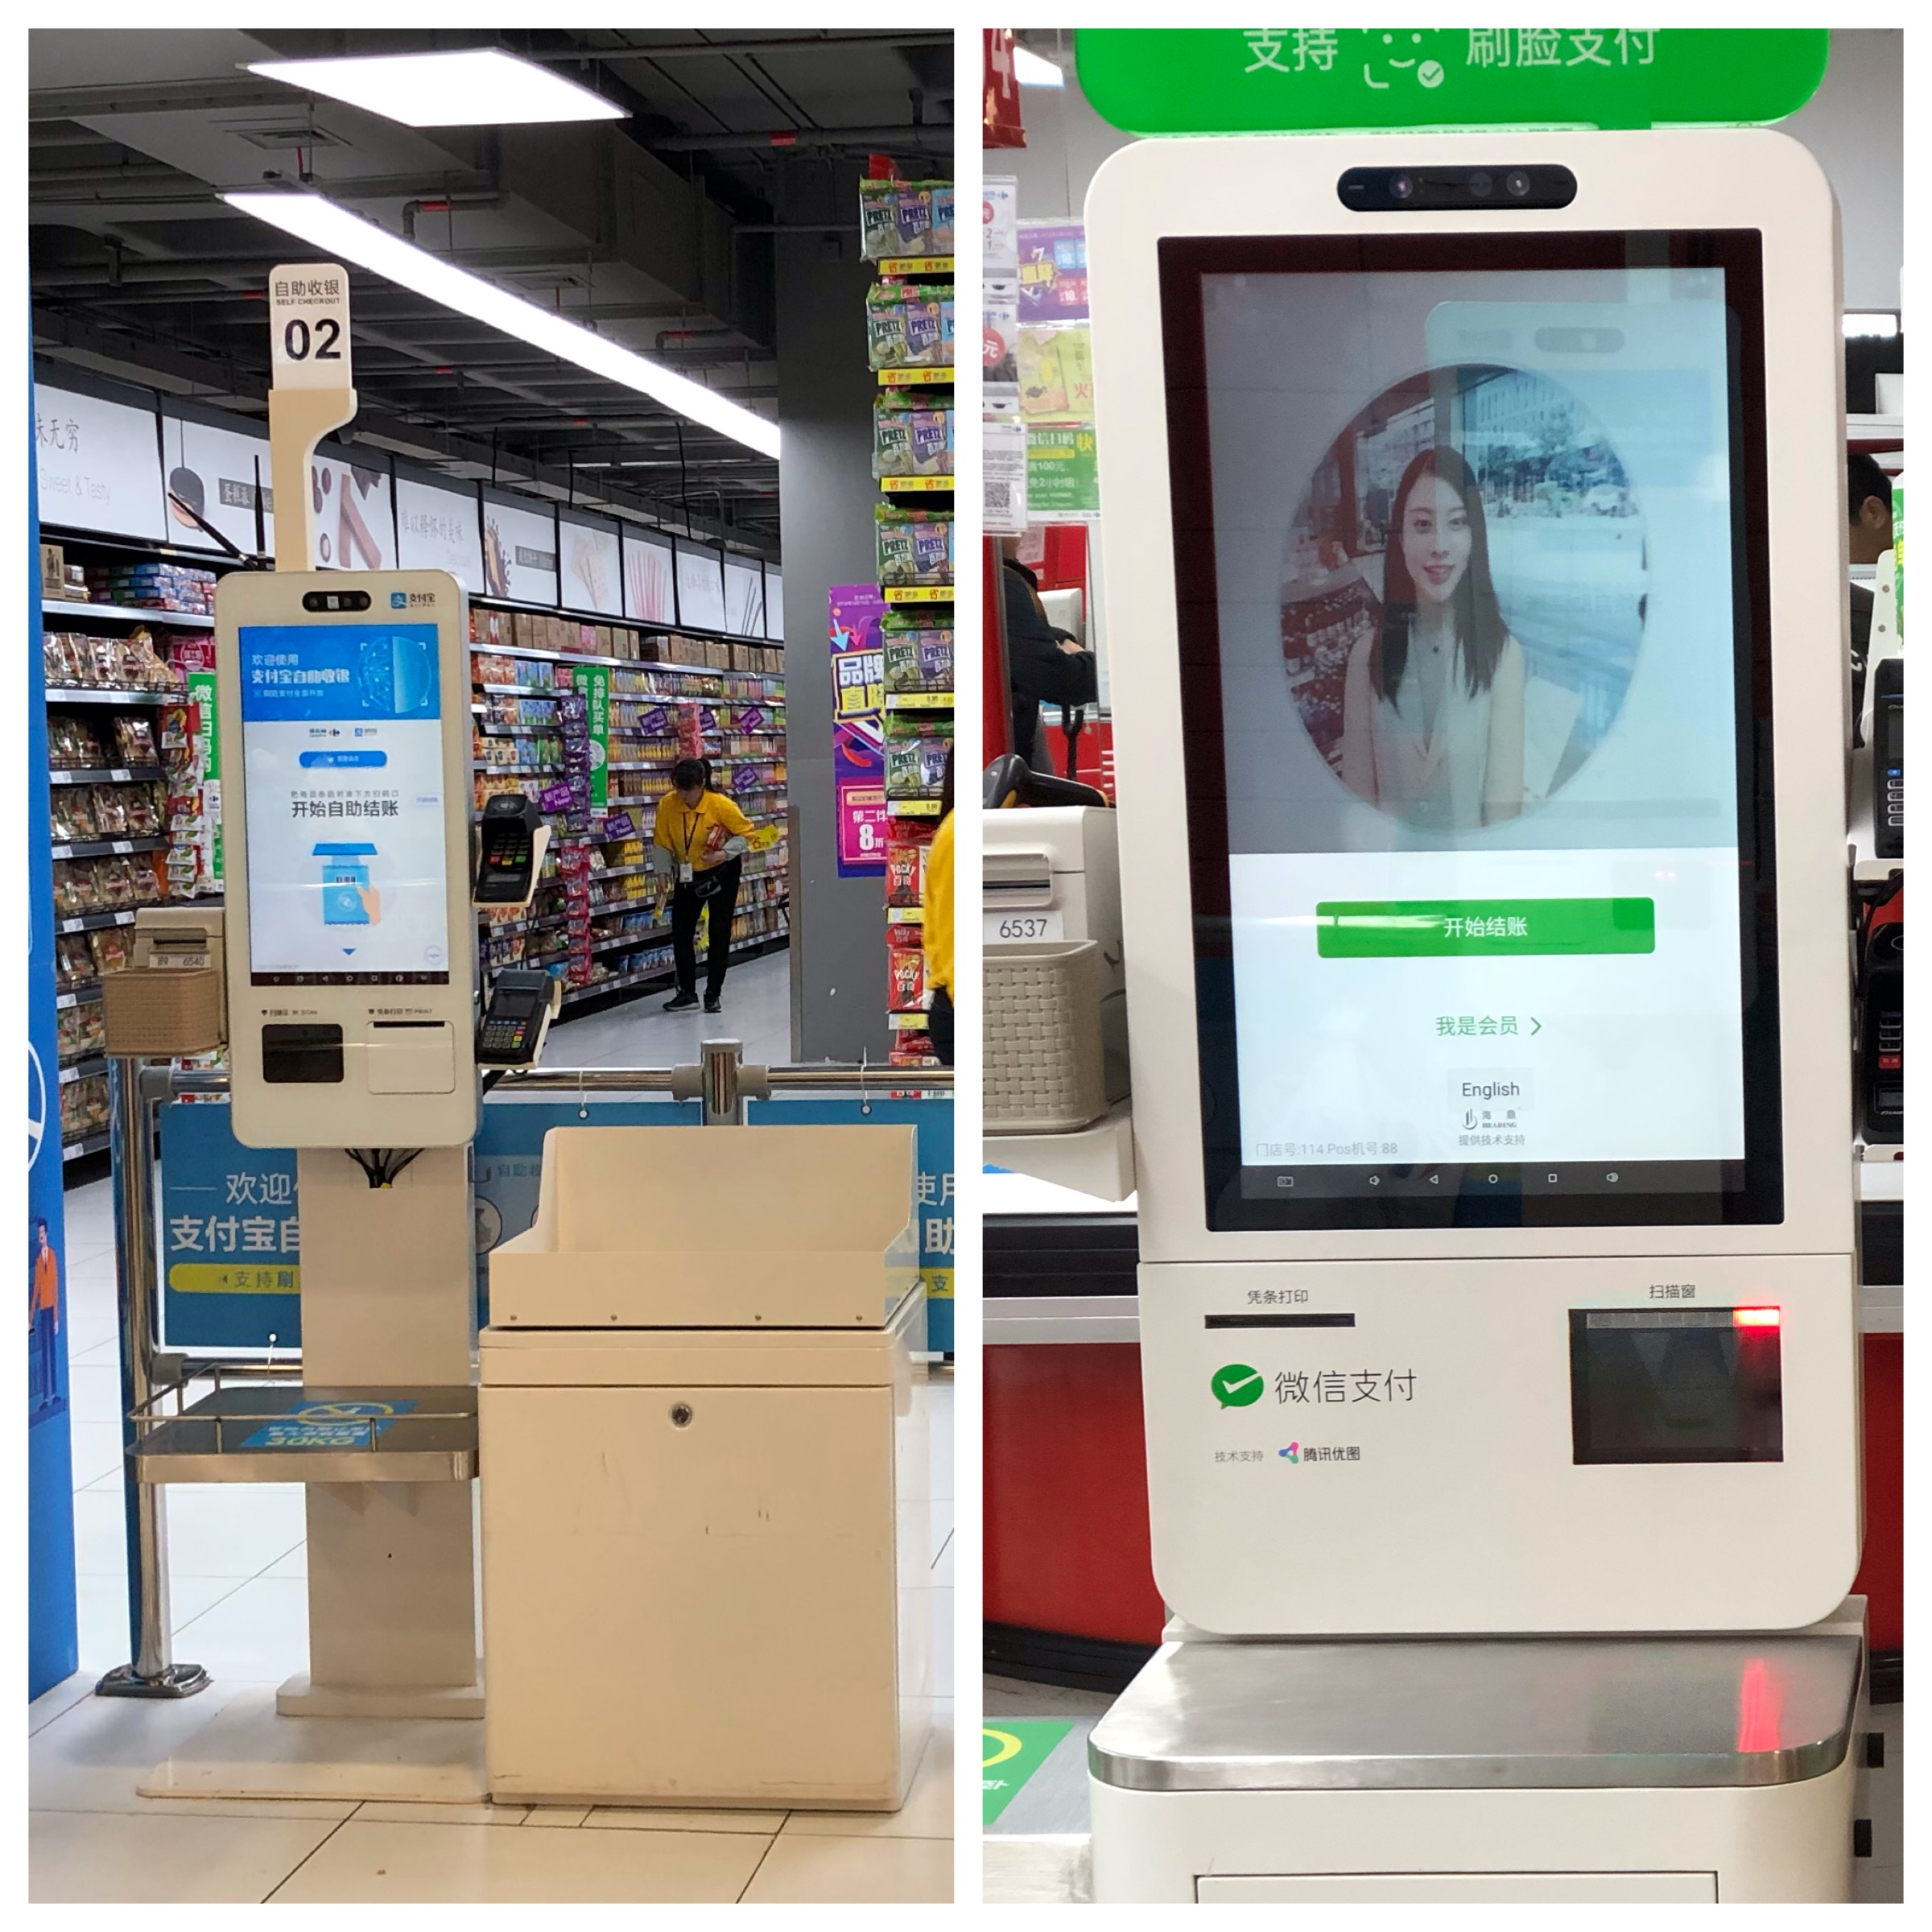 Facial recognition payment is only available at self check-out counters so far.